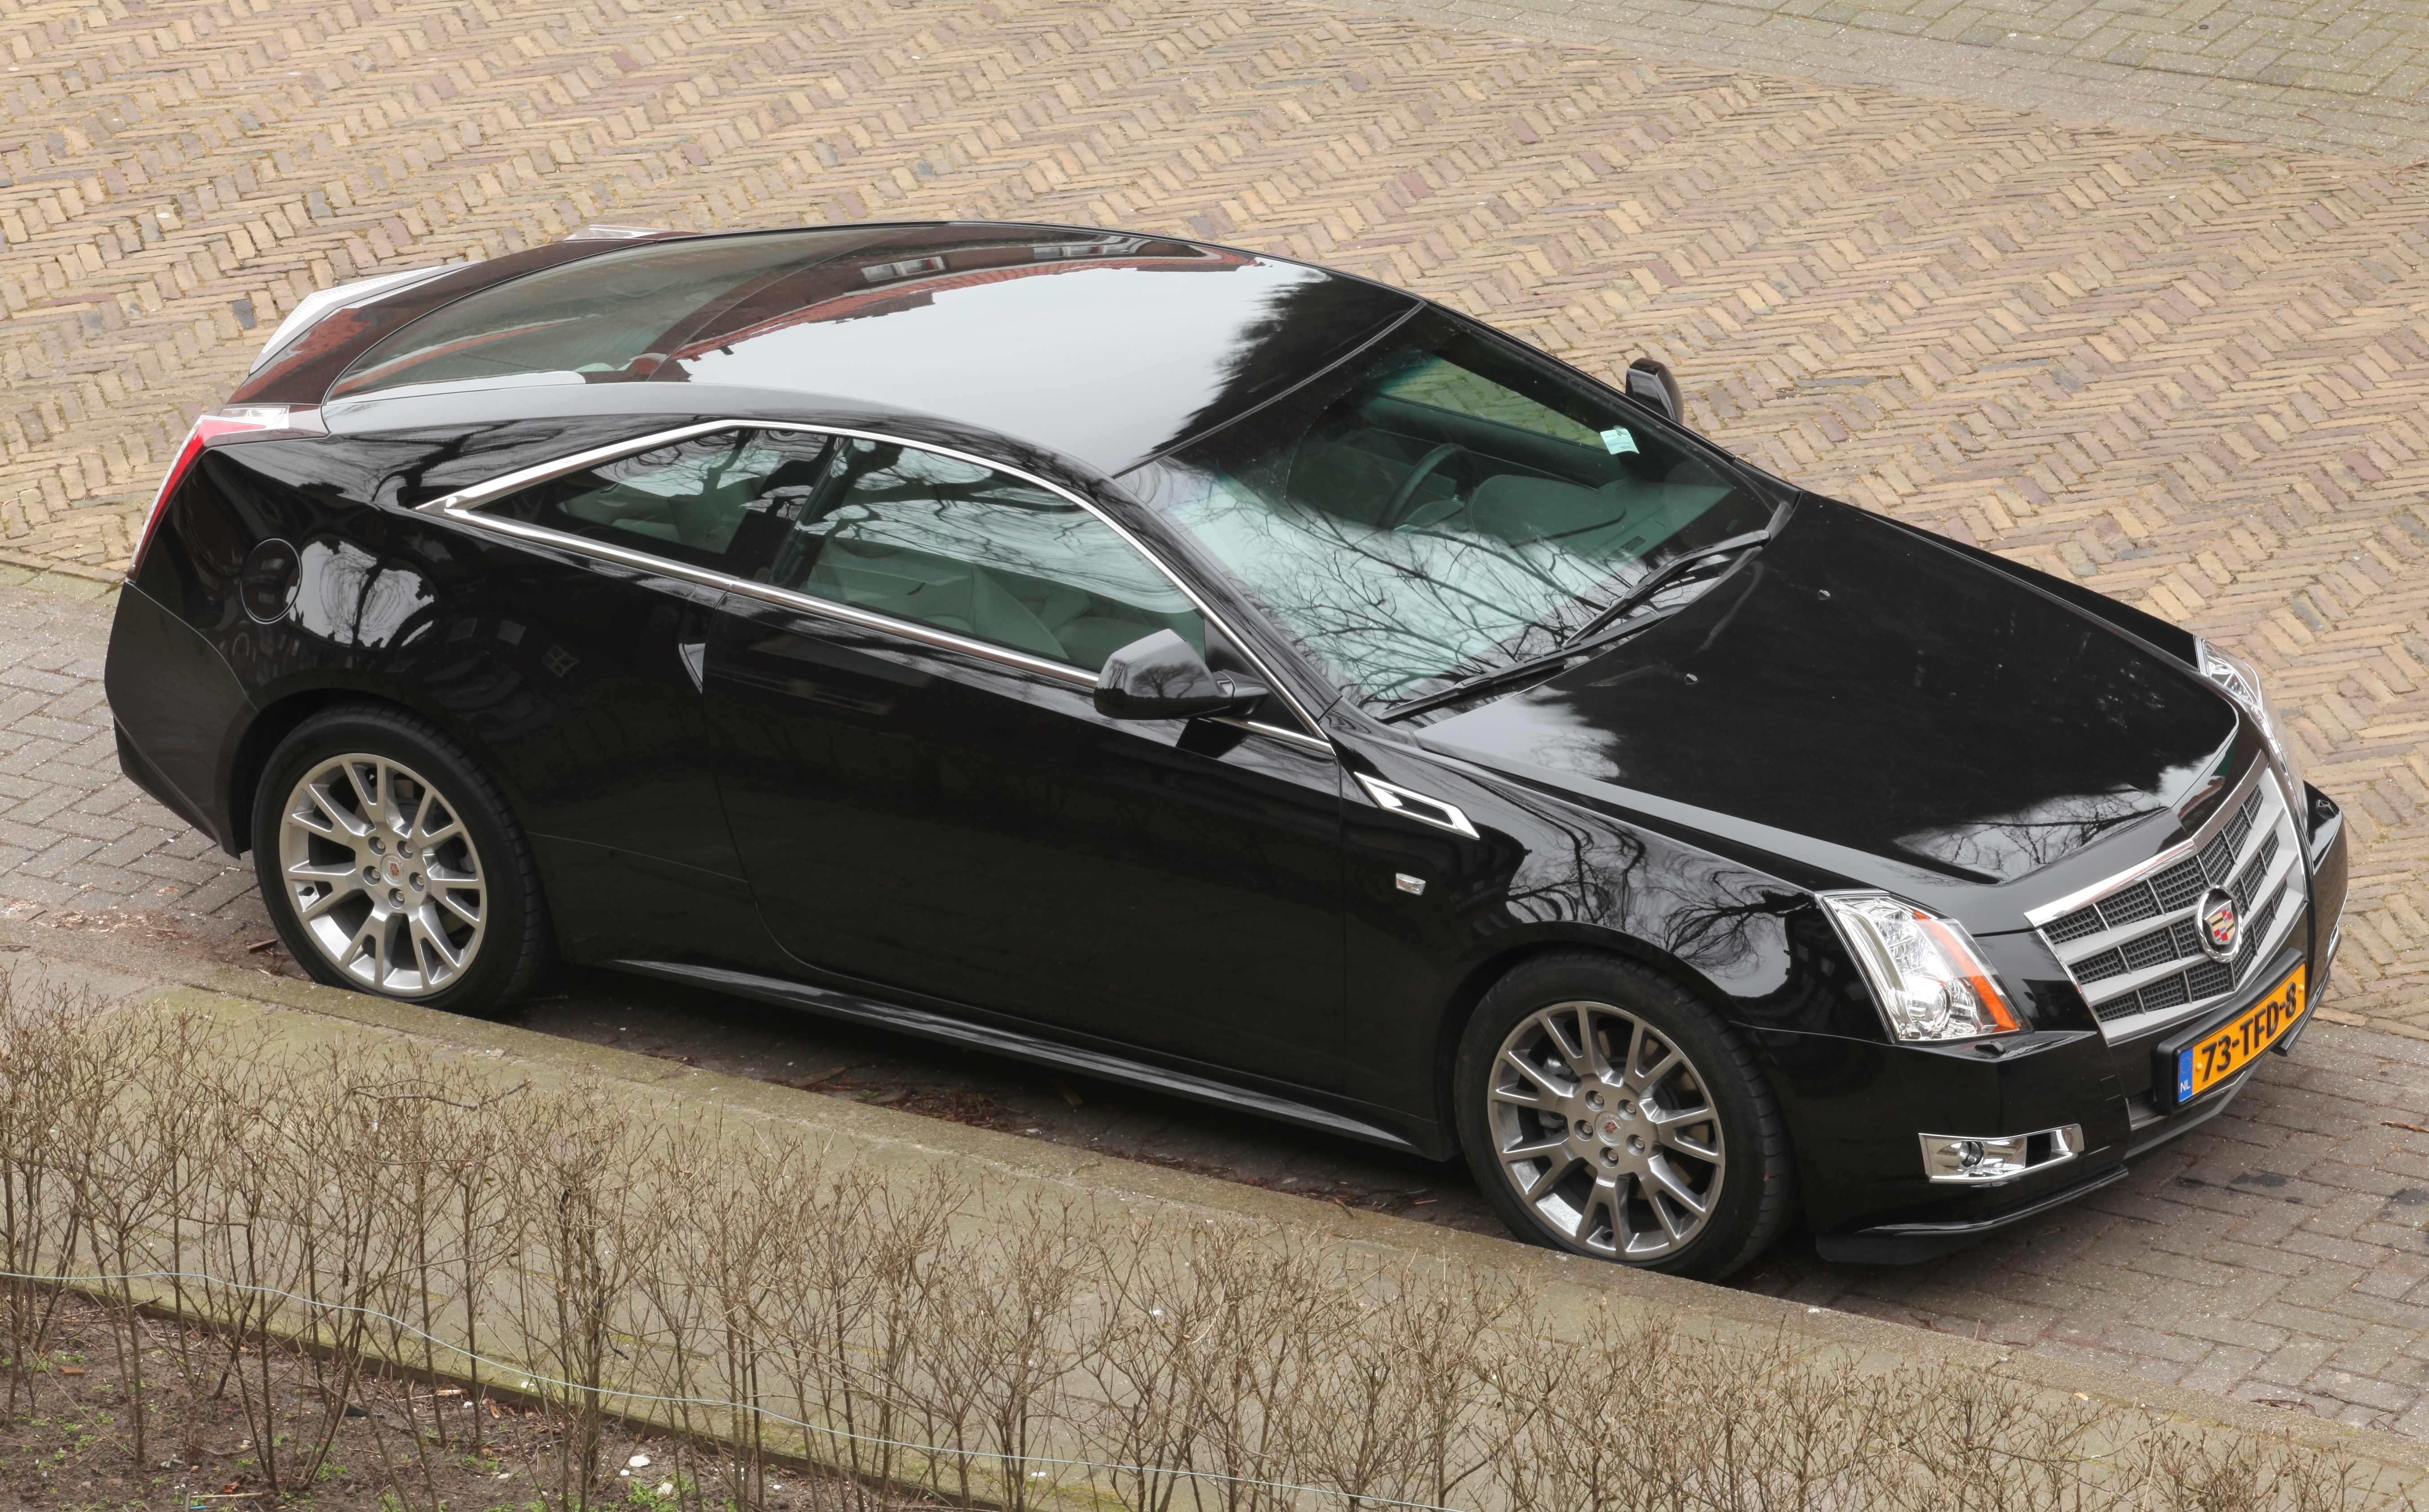 cadillac cts coupe 2012 models #3